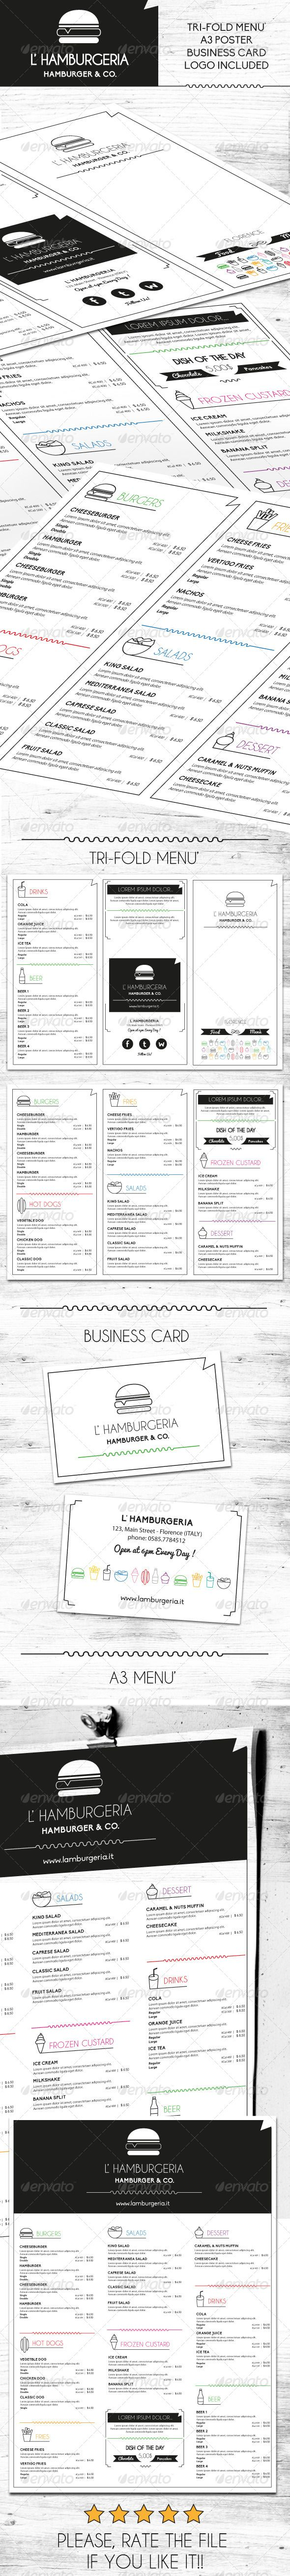 Hamburger Menu Template #design #alimentationmenu Download: http://graphicriver.net/item/hamburger-menu/6587350?ref=ksioks